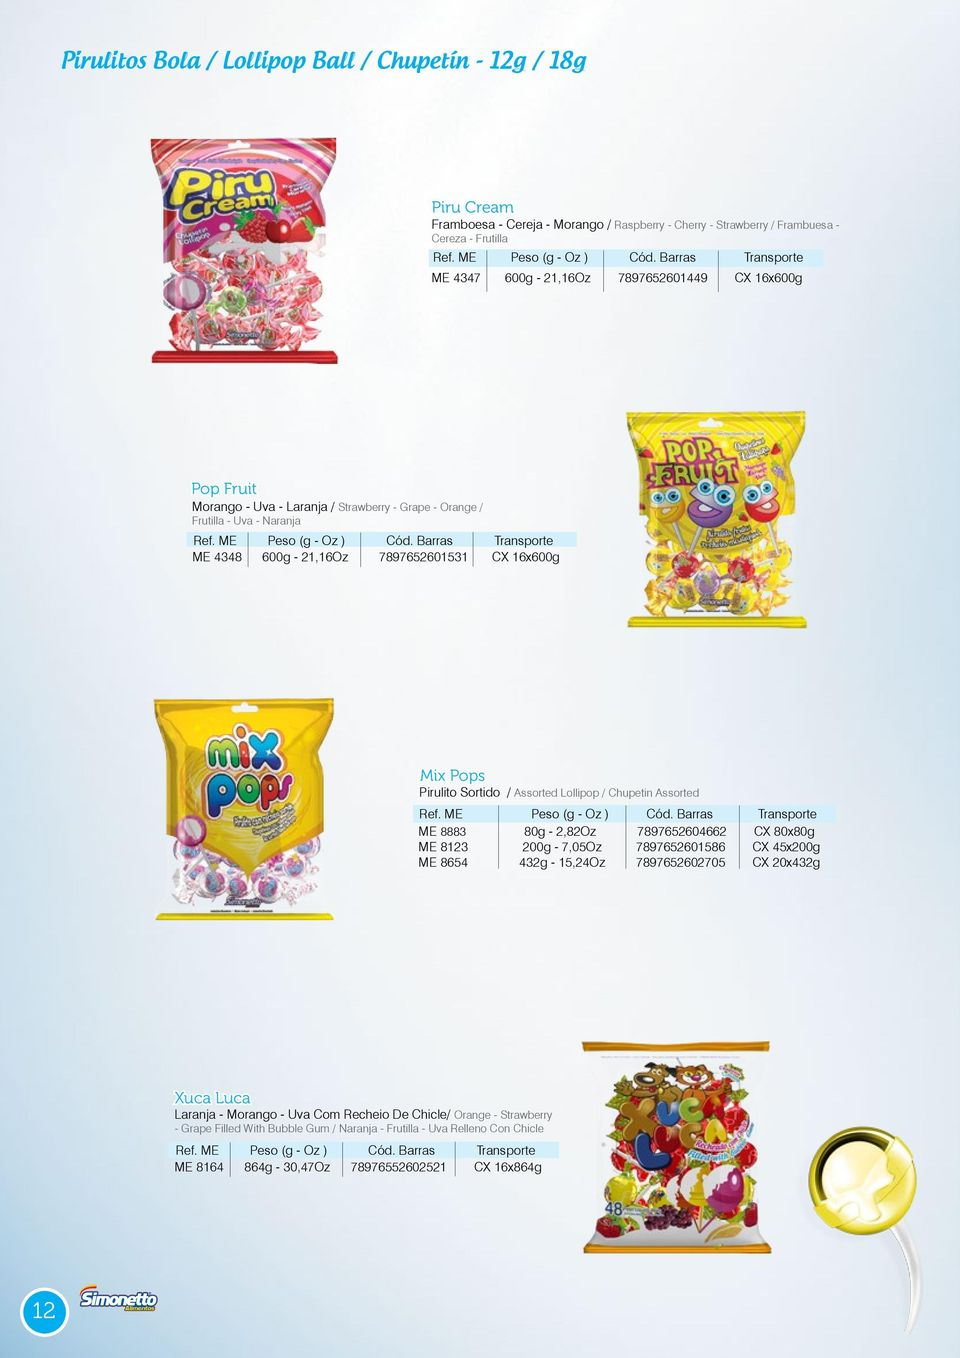 / Assorted Lollipop / Chupetin Assorted ME 8883 80g - 2,82Oz 7897652604662 CX 80x80g ME 8123 200g - 7,05Oz 7897652601586 CX 45x200g ME 8654 432g - 15,24Oz 7897652602705 CX 20x432g Xuca Luca